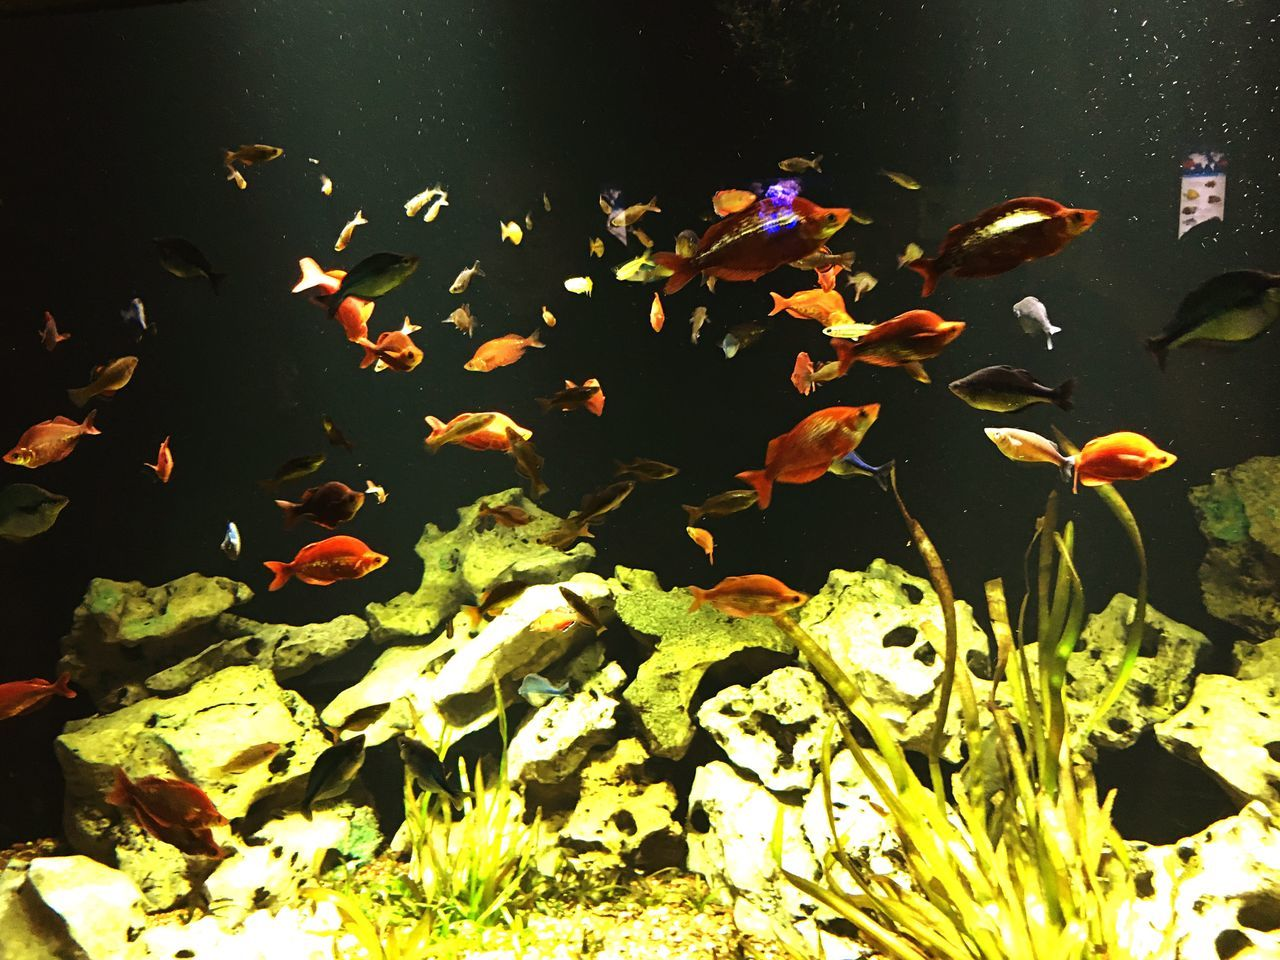 water, nature, swimming, fish, animal themes, large group of animals, animals in the wild, sea life, no people, beauty in nature, plant, leaf, outdoors, day, close-up